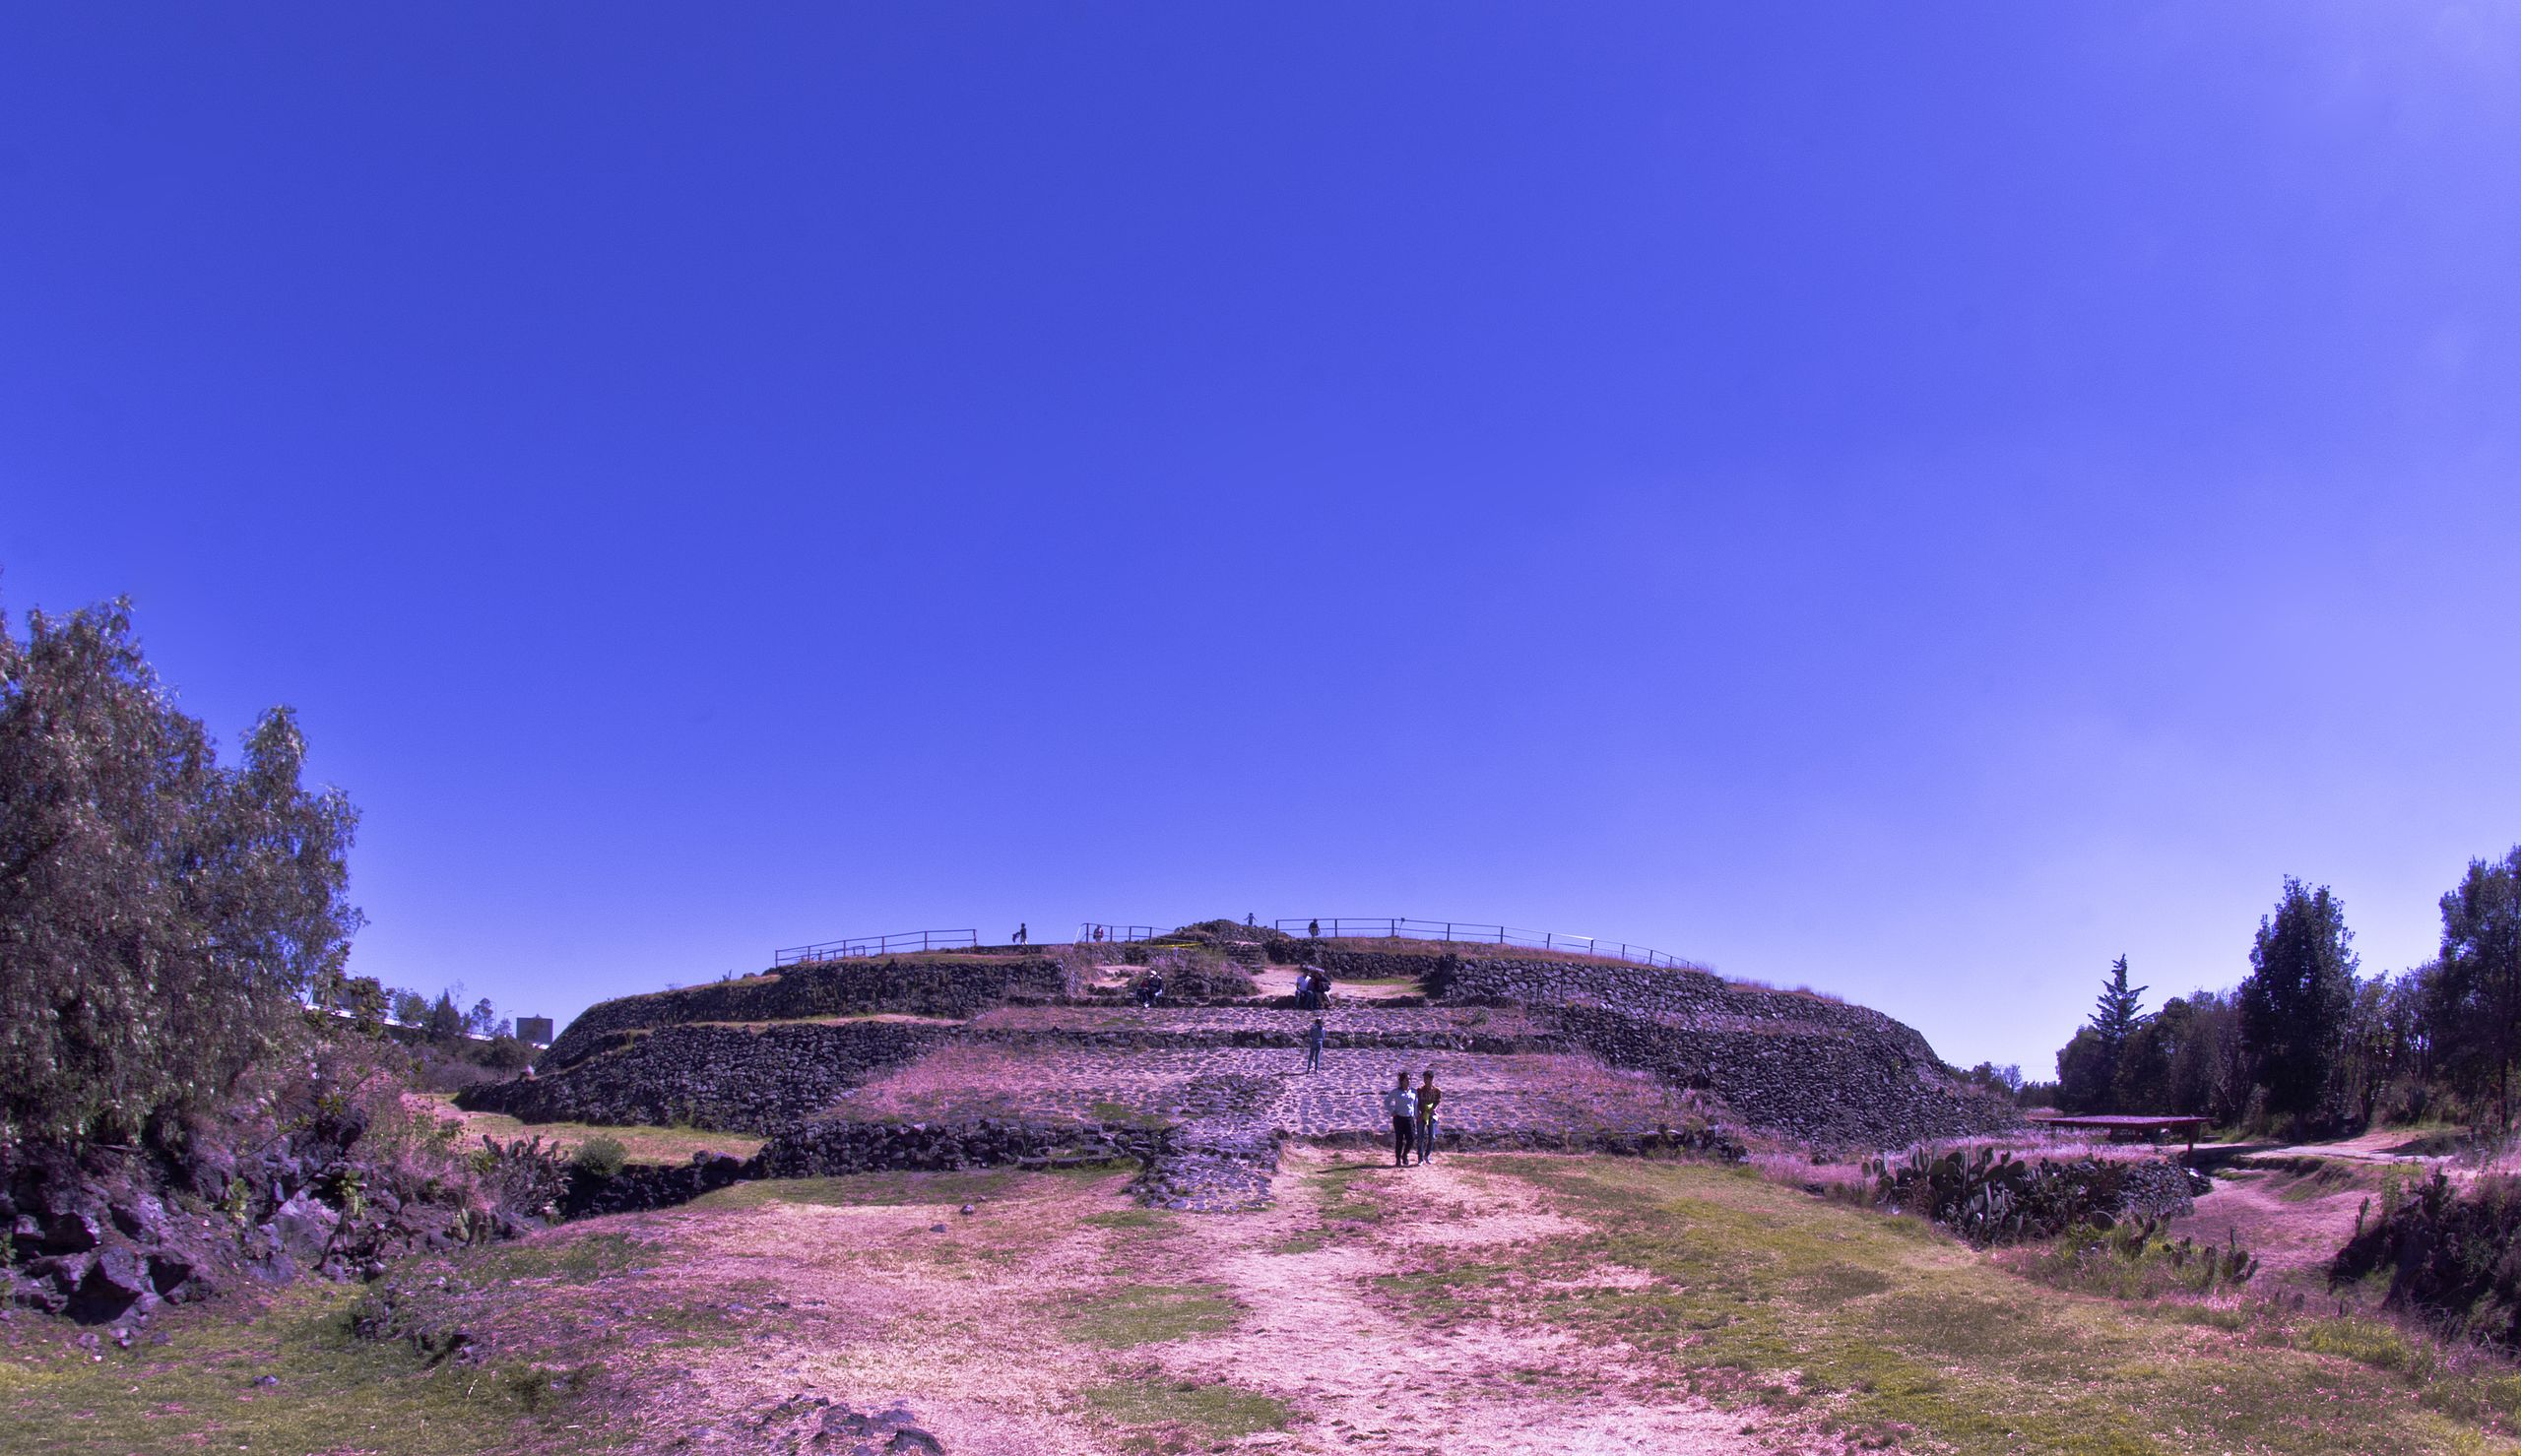 Cuicuilco Archaeological Zone